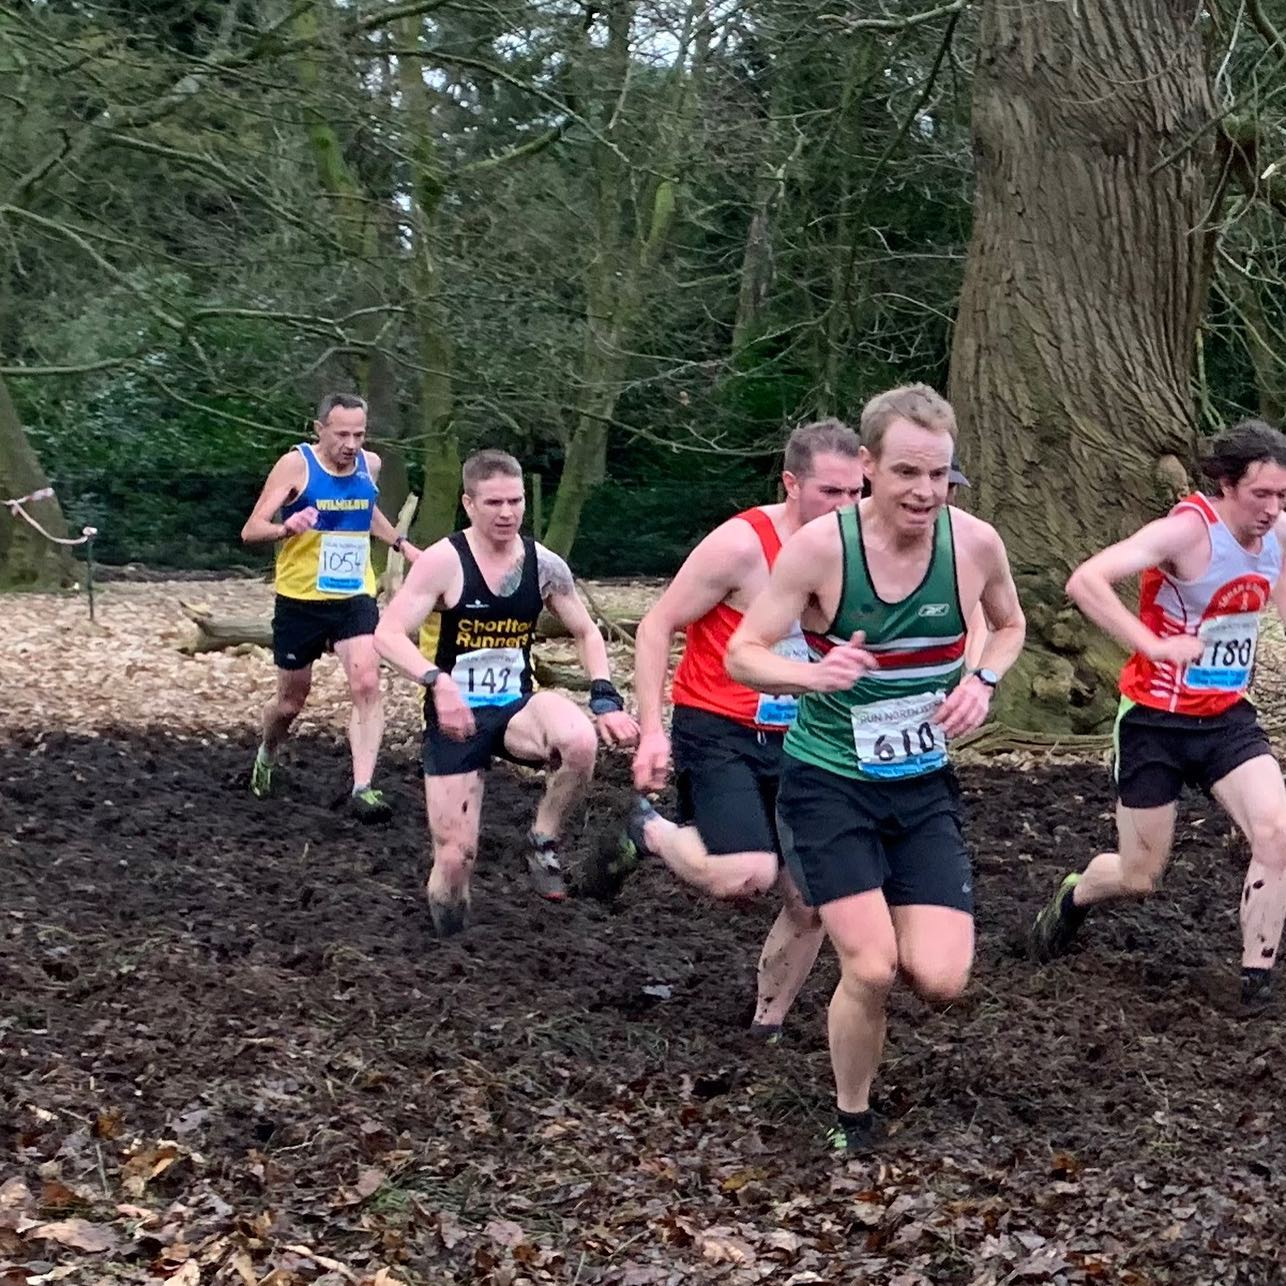 Tatton Park XC with Chorlton Runners #running #muddy #crosscountry #xc